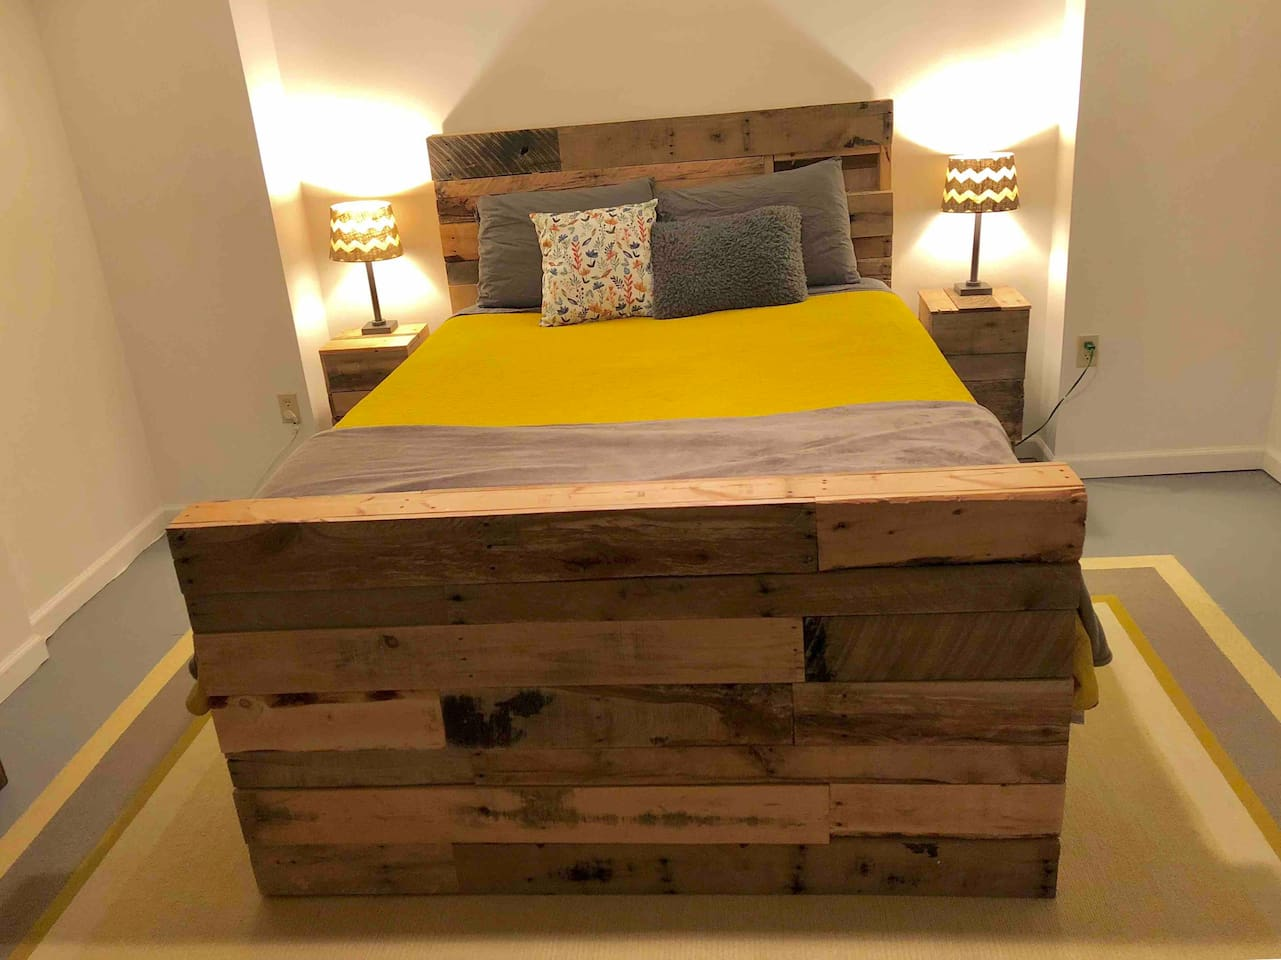 Handcrafted pallet furniture featured throughout the suite